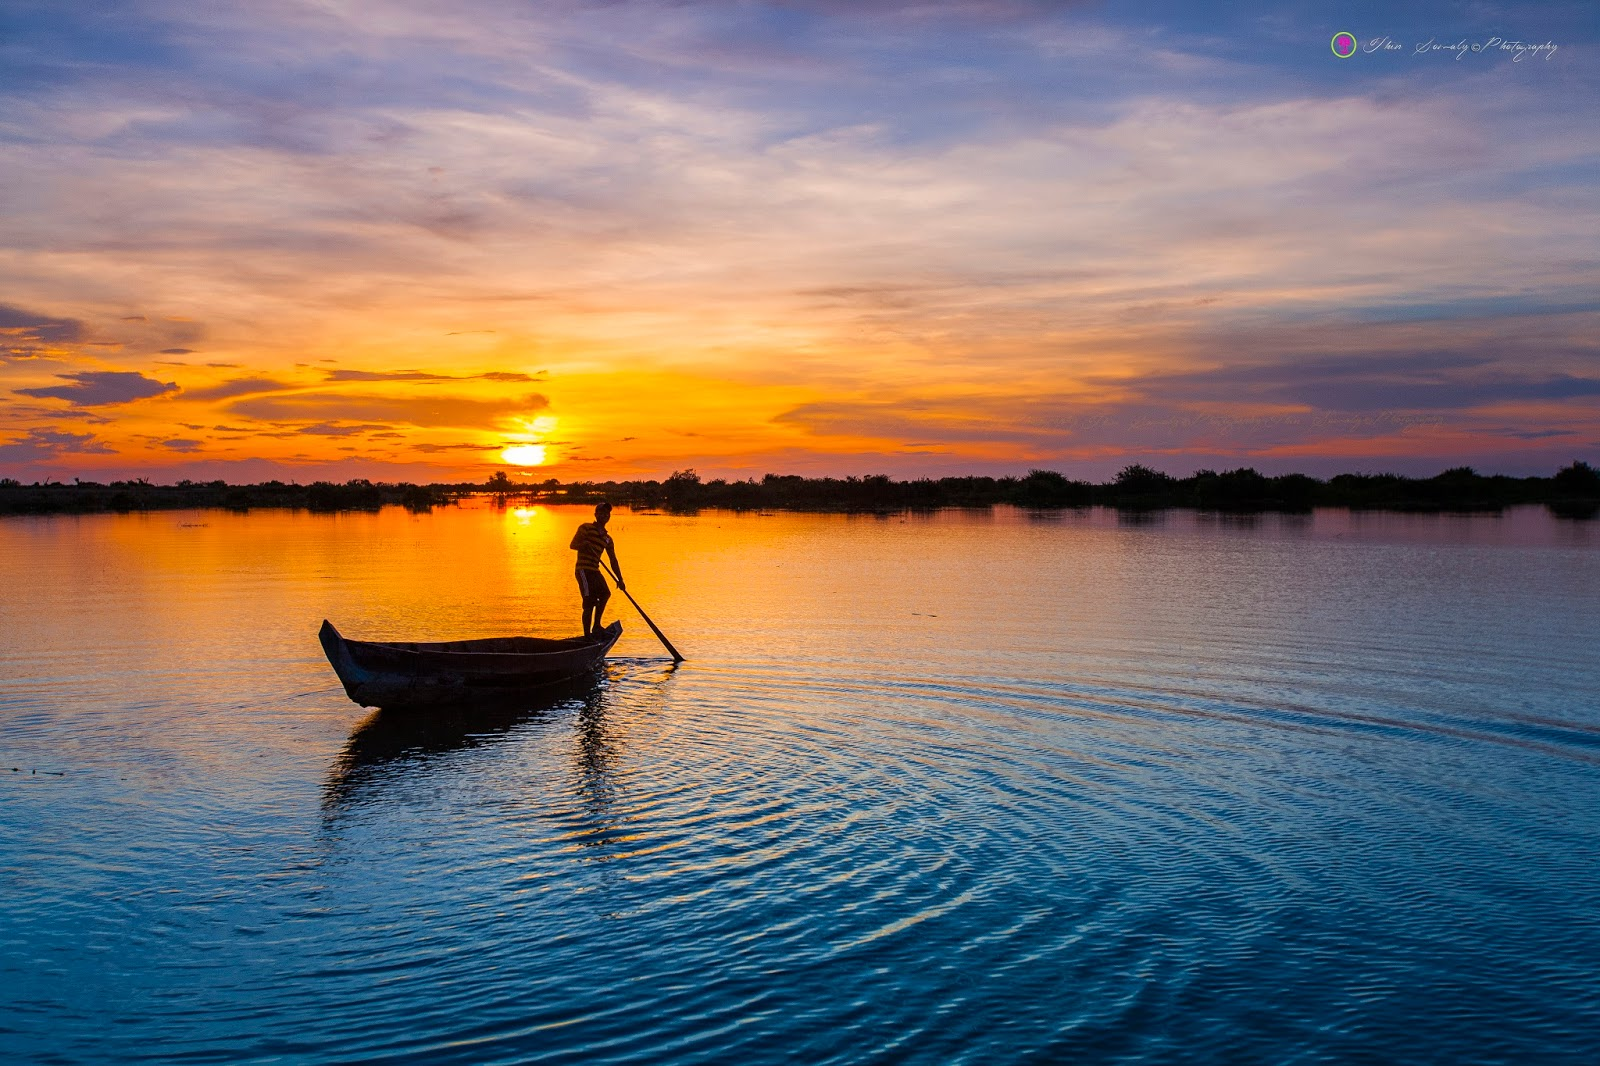 Admire the largest reservoir of South East Asia - Tonlé Sap Lake